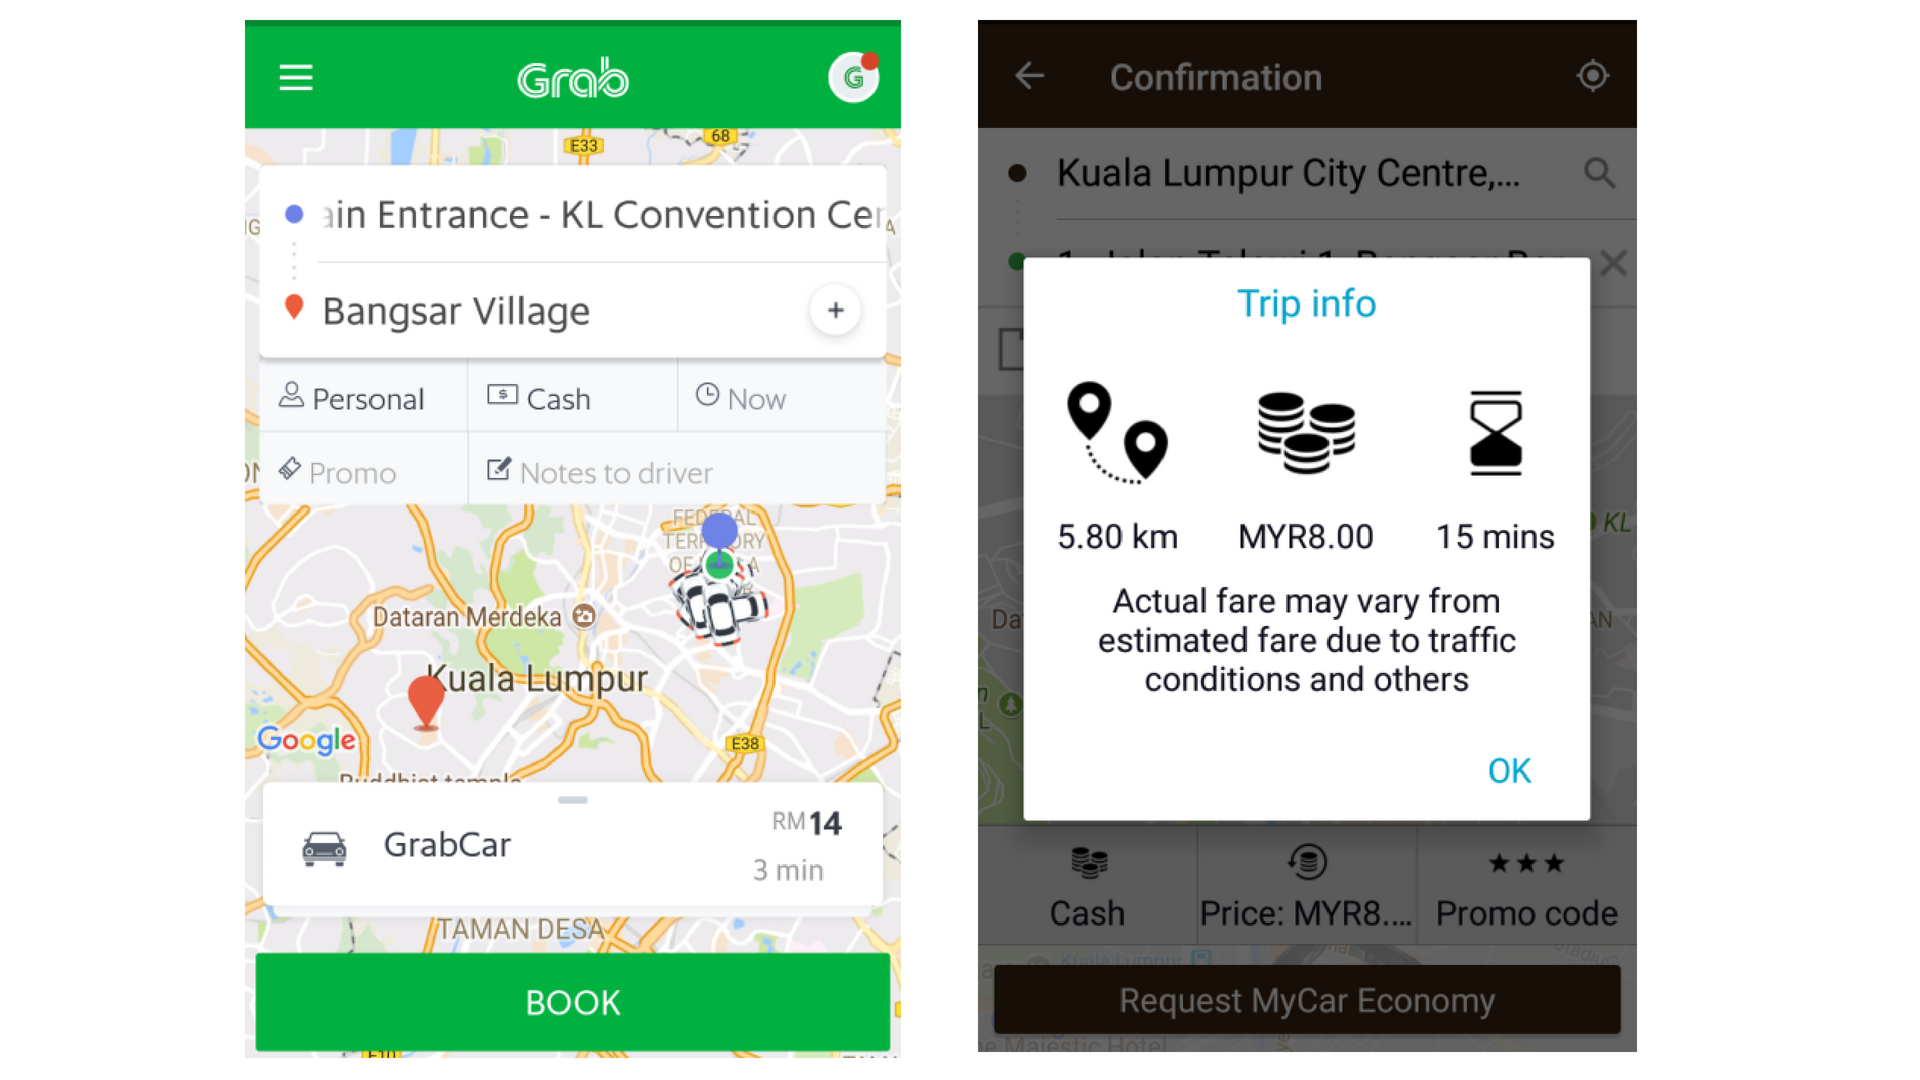 Grab VS MyCar: Which One Is More Cost Effective & Functional?